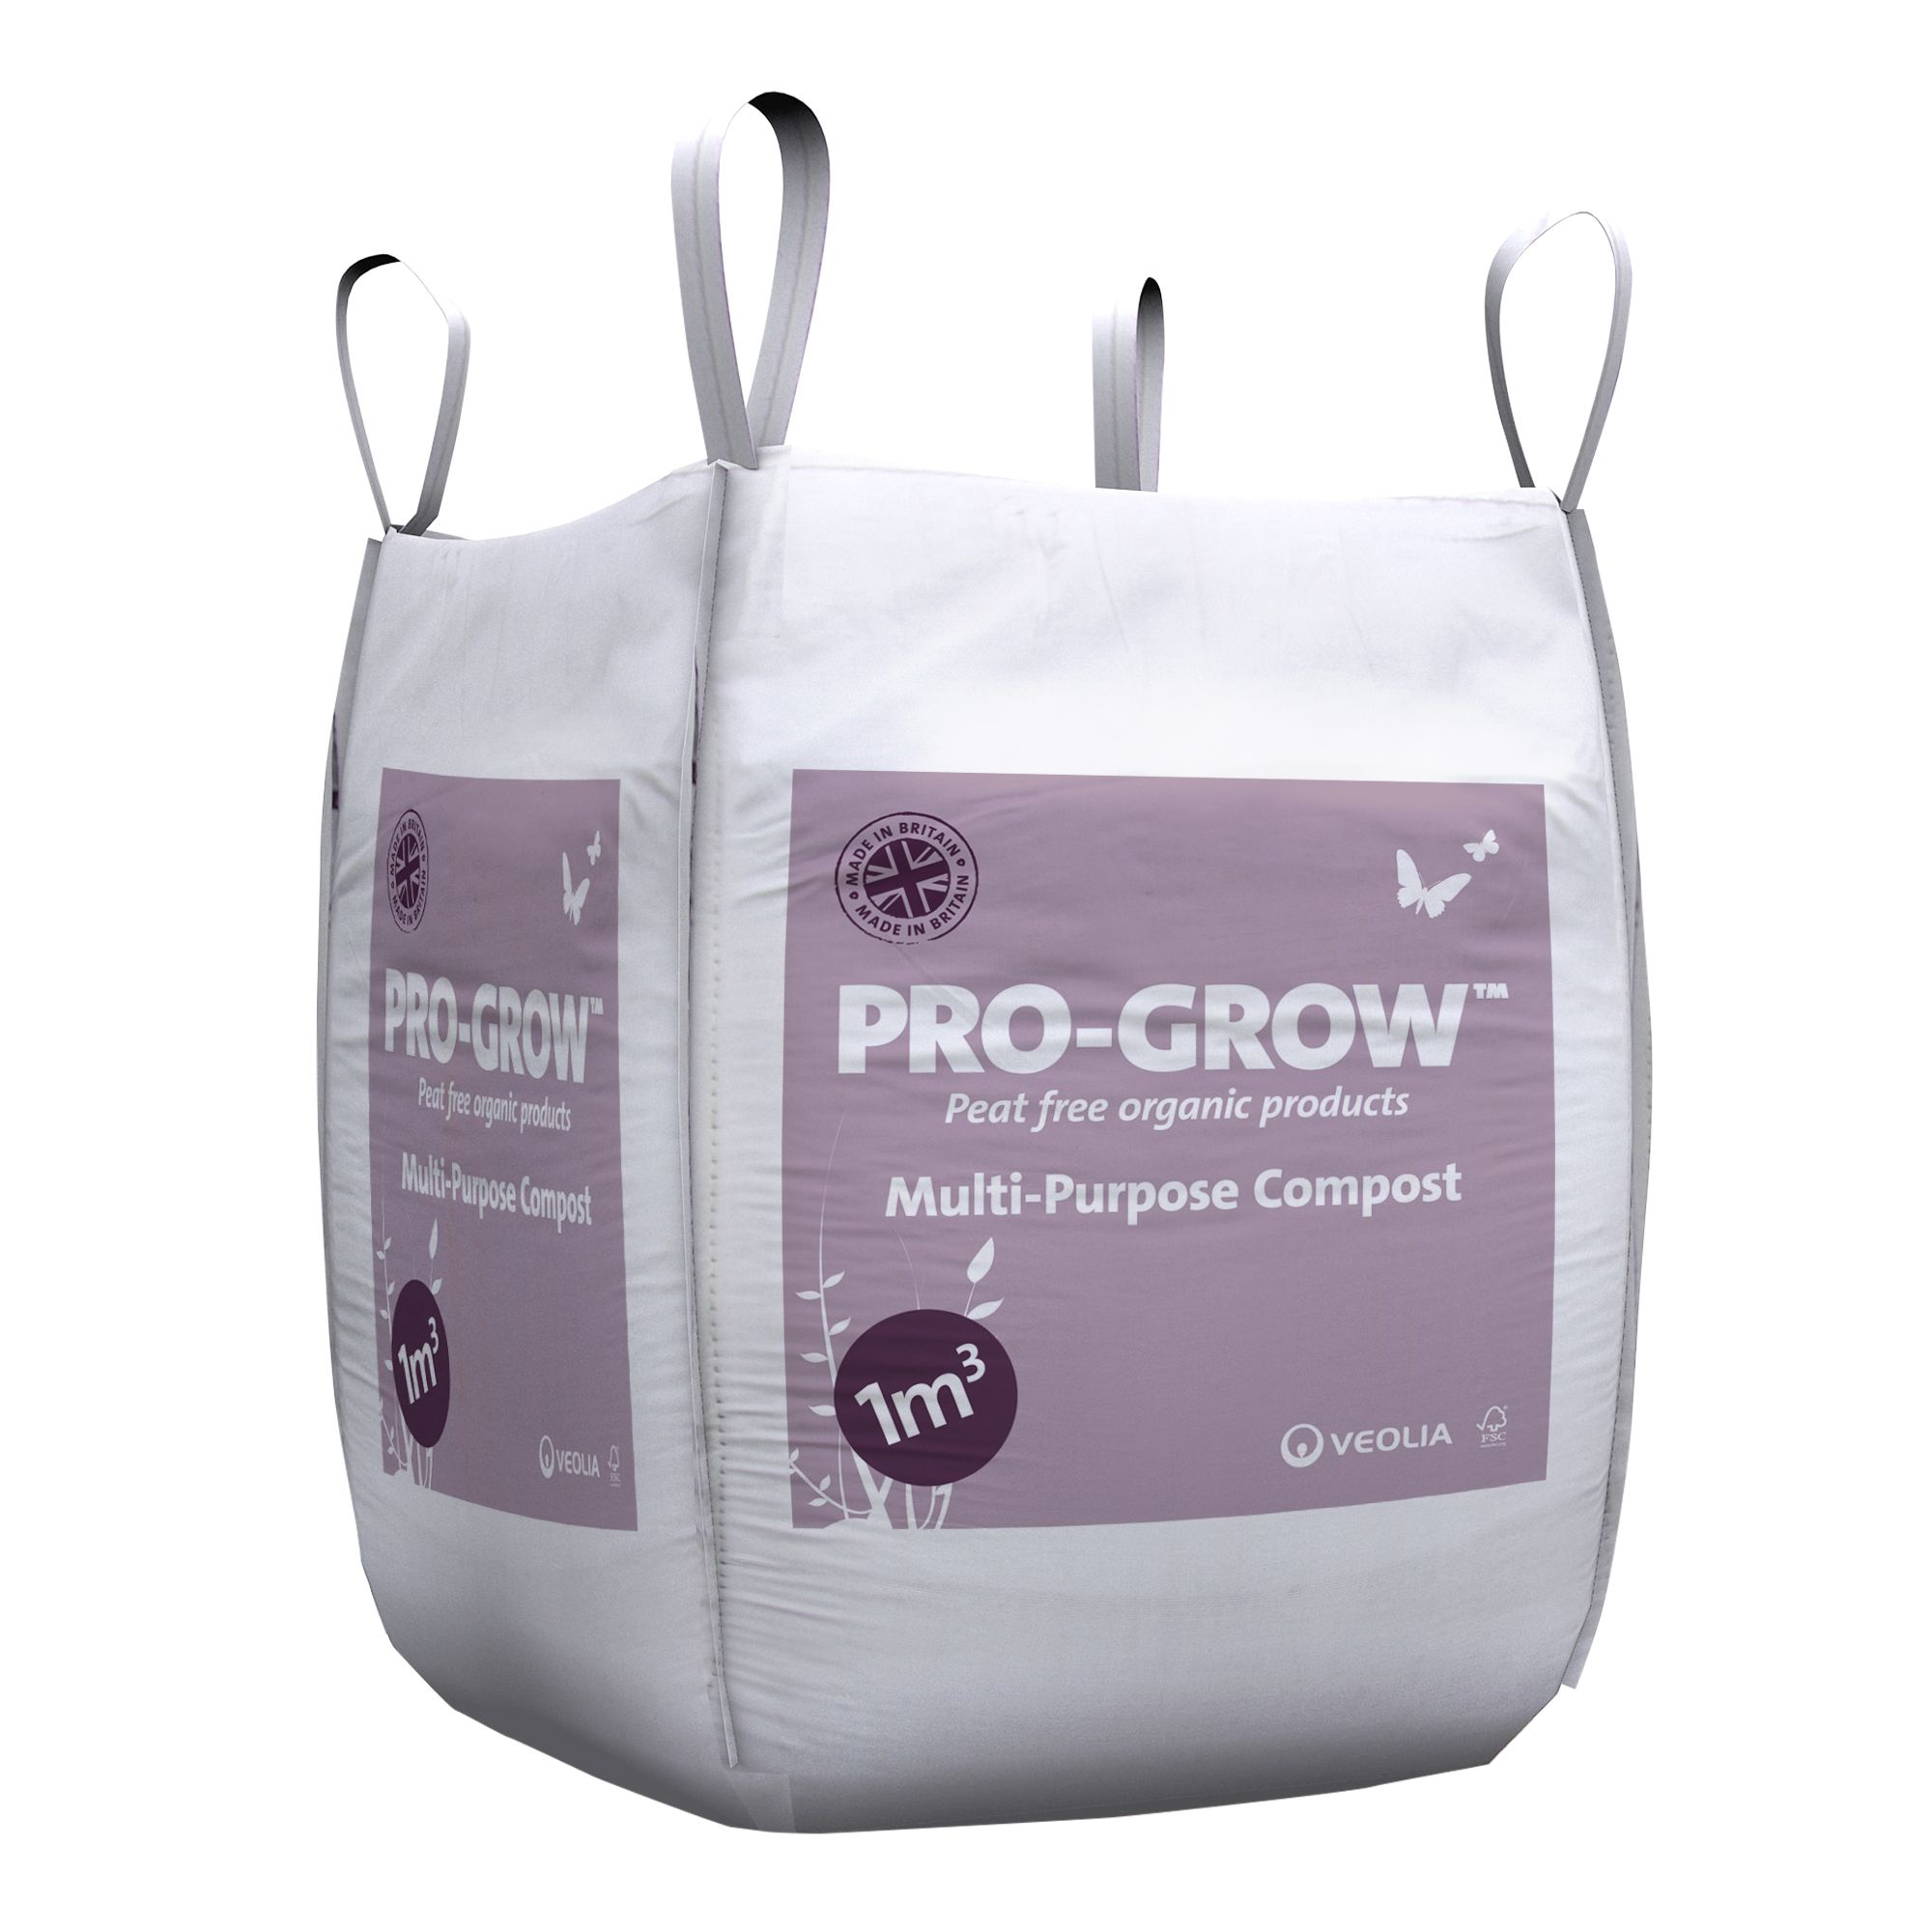 Image for westland multi purpose compost with john innes 50l from - Veolia Pro Grow Multi Purpose Compost 1000l